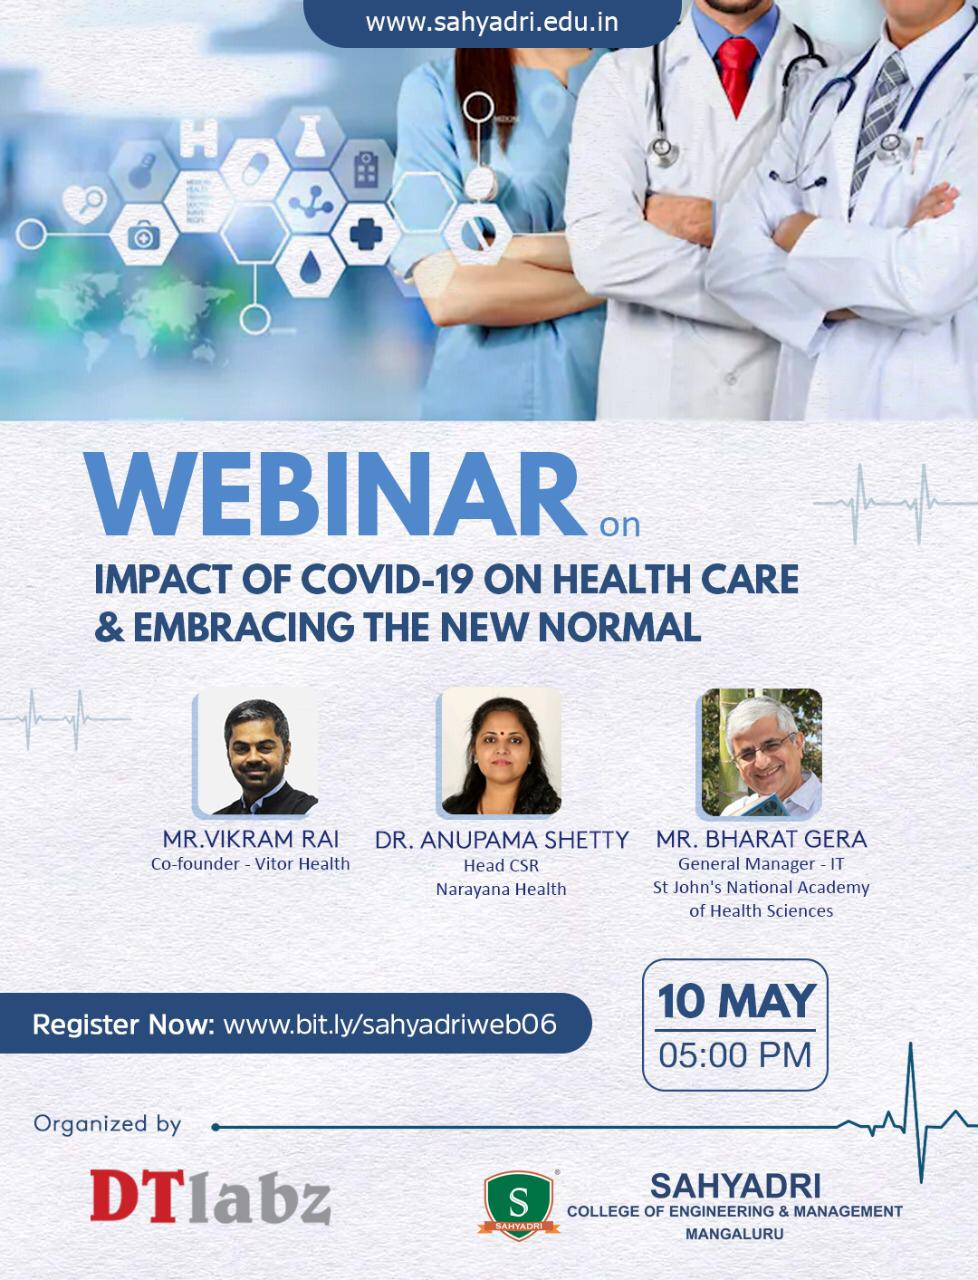 Webinar on IMPACT OF COVID-19 ON HEALTH CARE & EMBRACING THE NEW NORMAL